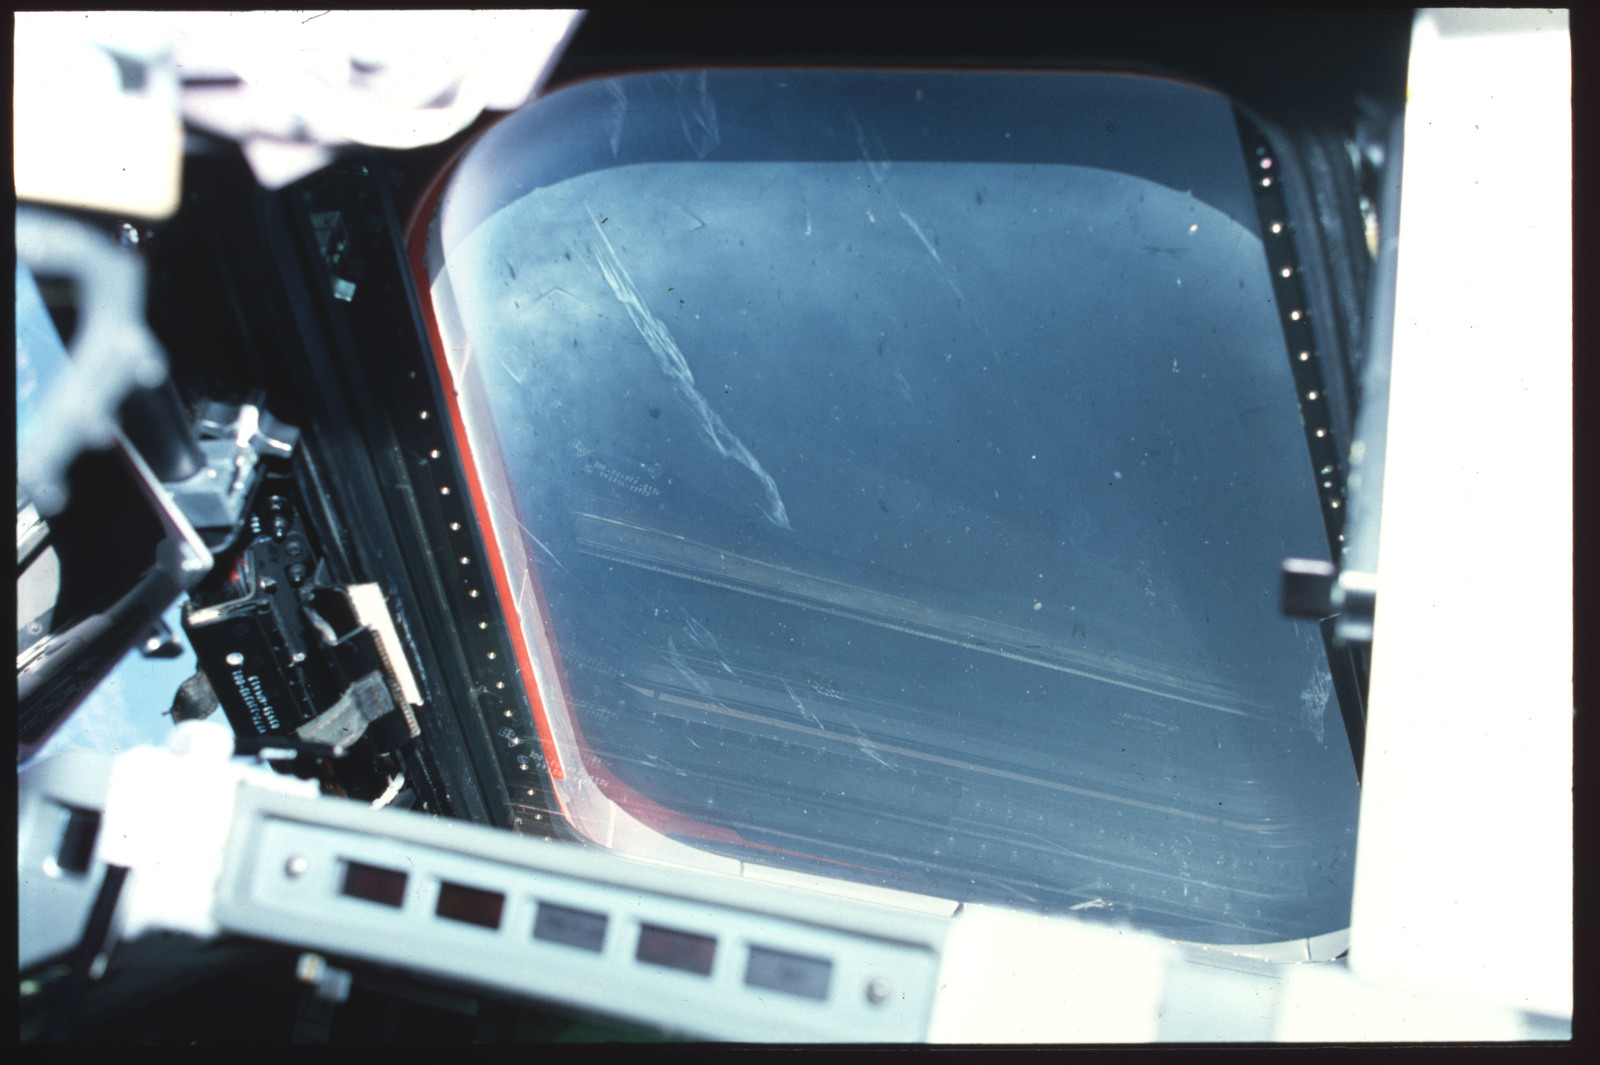 S03-19-001 - STS-003 - Crew compartment flight deck window debris, damage, streak documentation